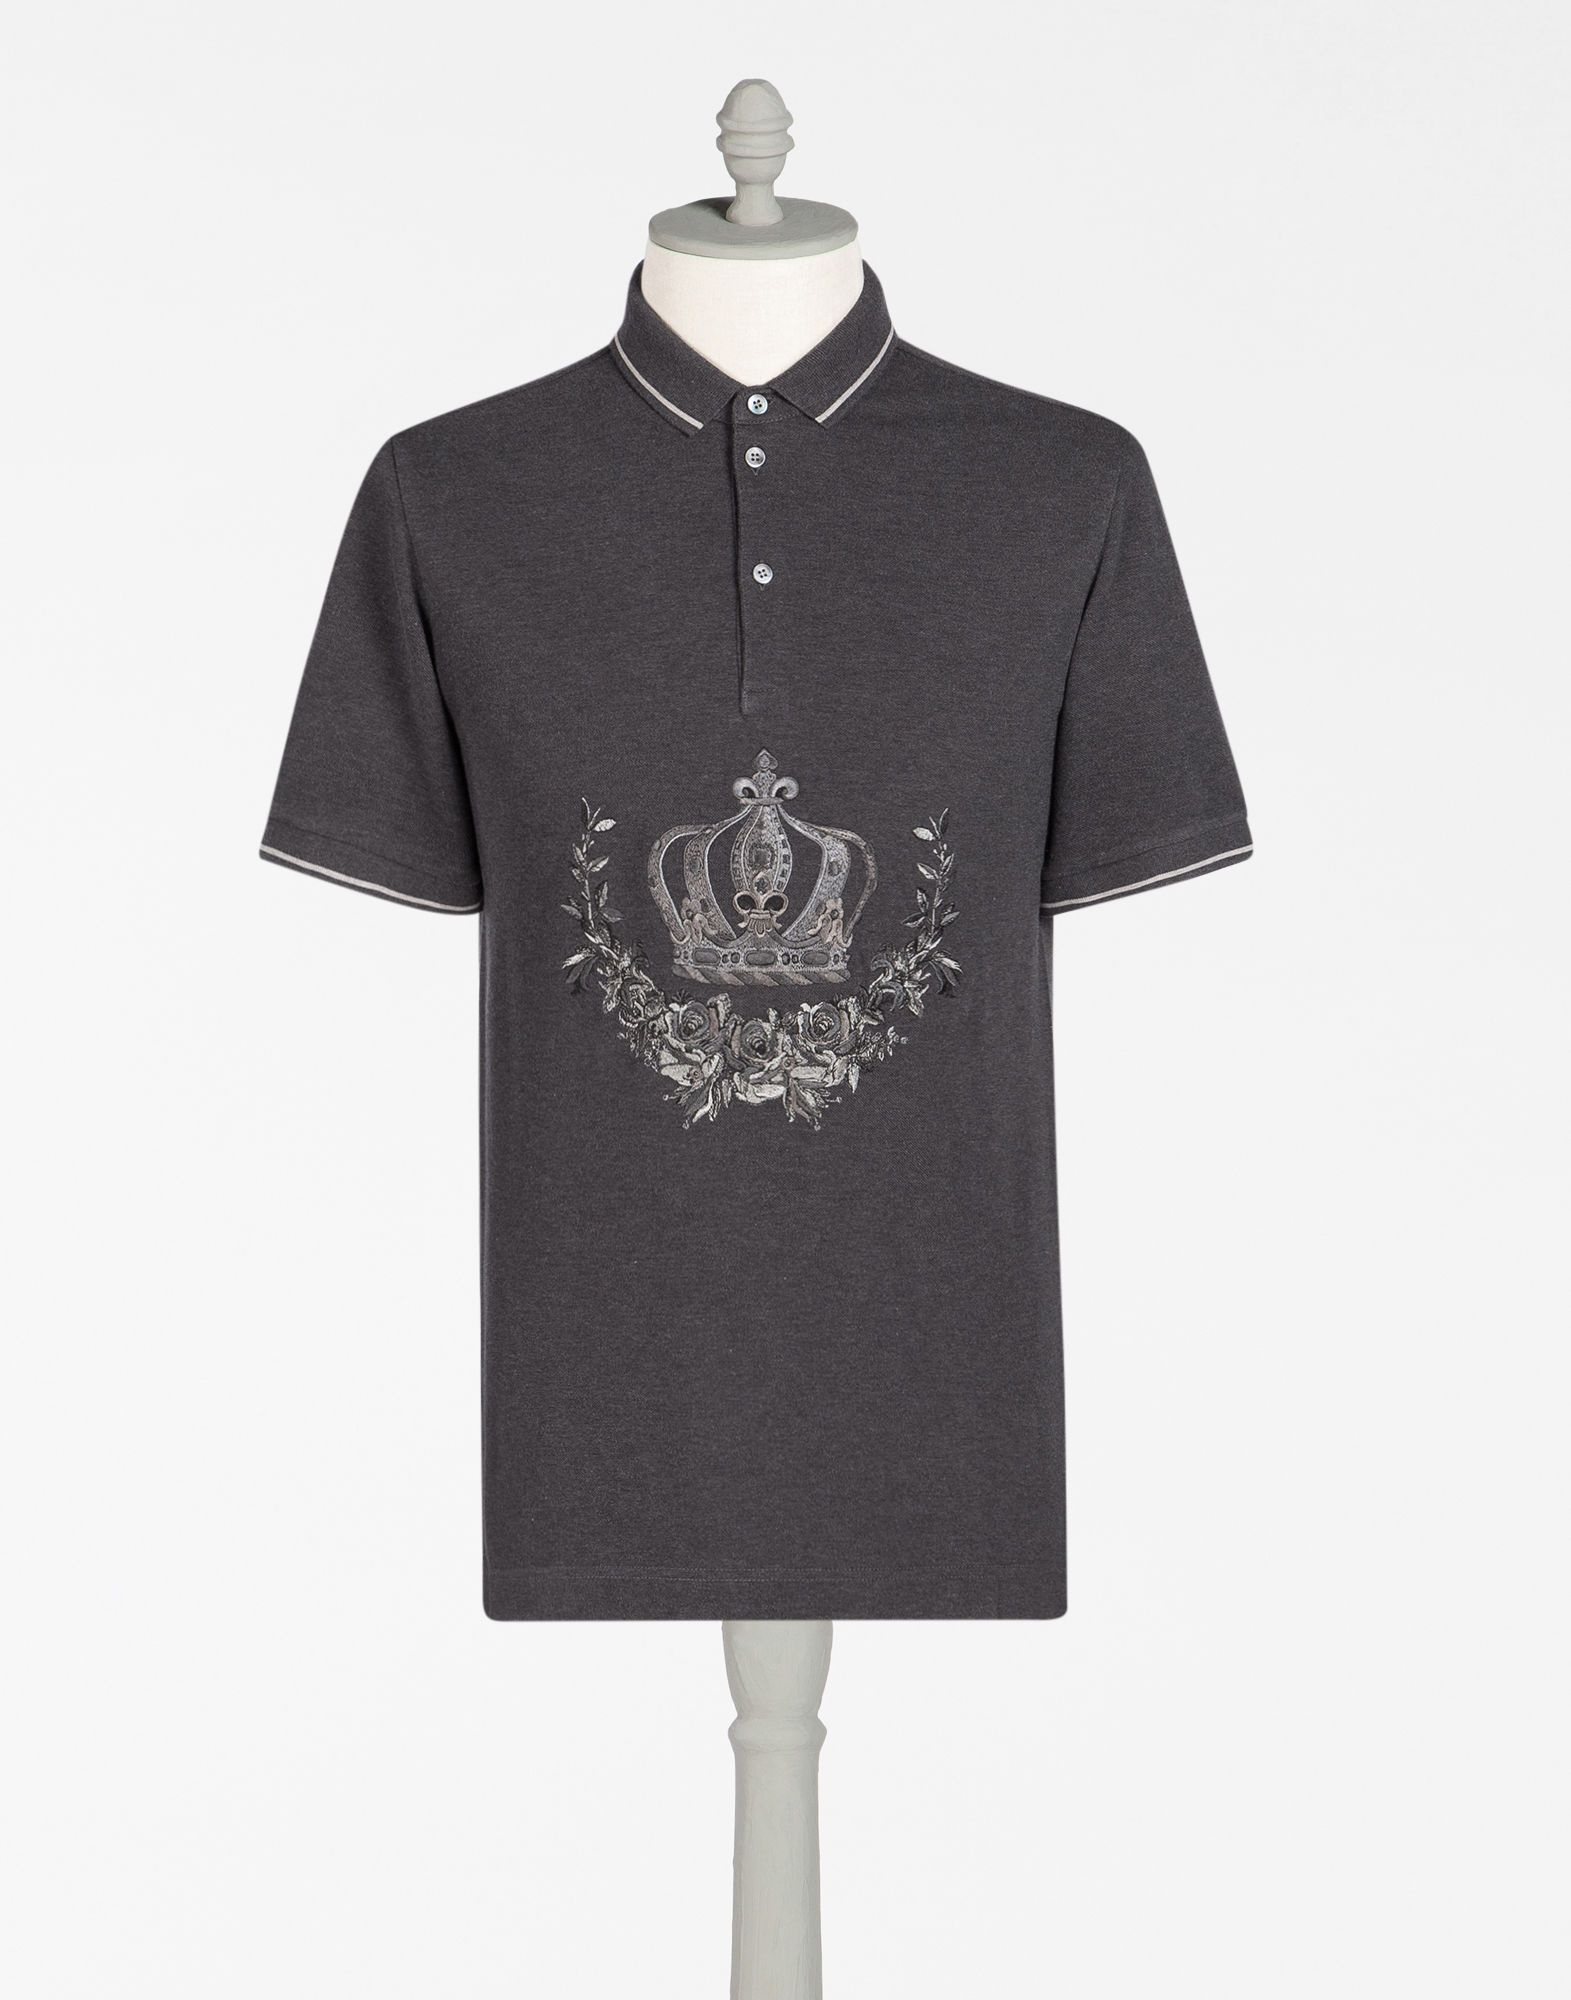 Cheap Polo Shirts With Embroidery Lauren Goss